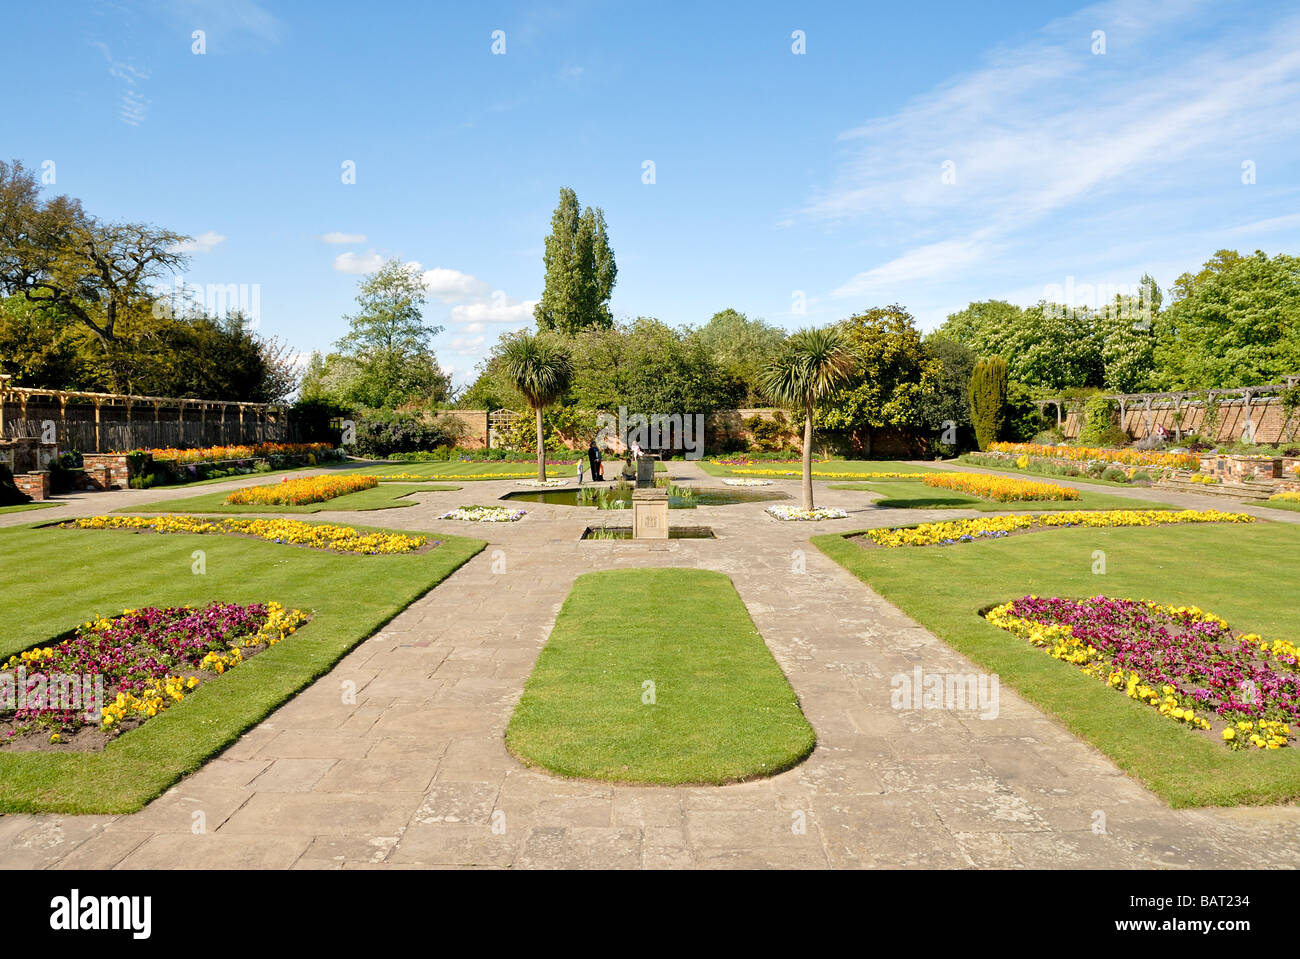 Priory Park Prittlewell Southend on Sea Essex England UK Stock Photo